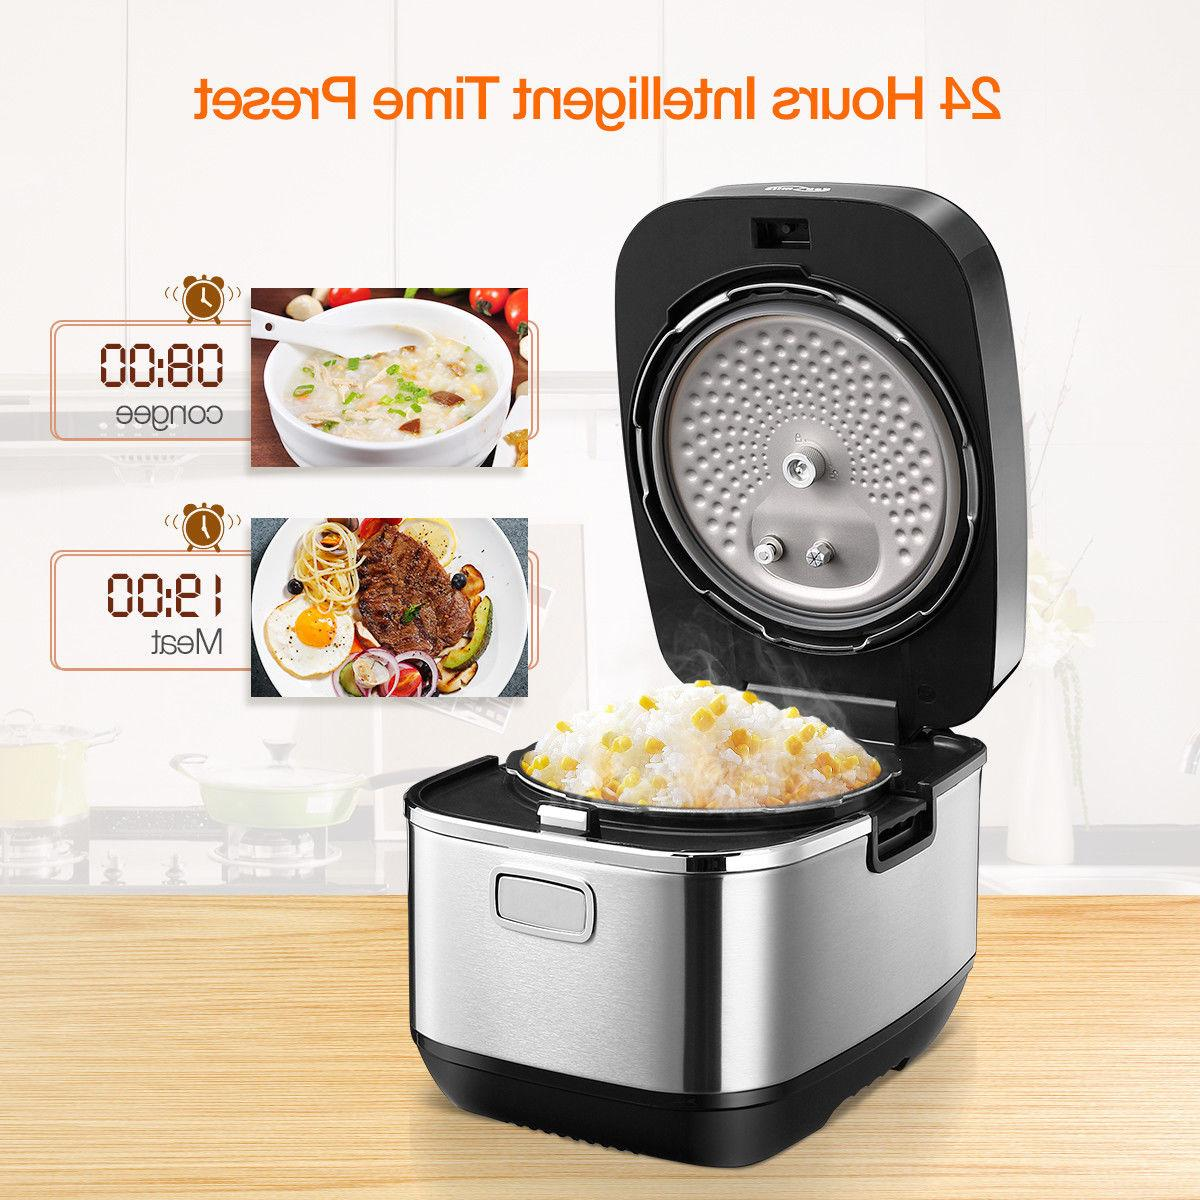 Housmile 5Quart 1000W Electric Induction System